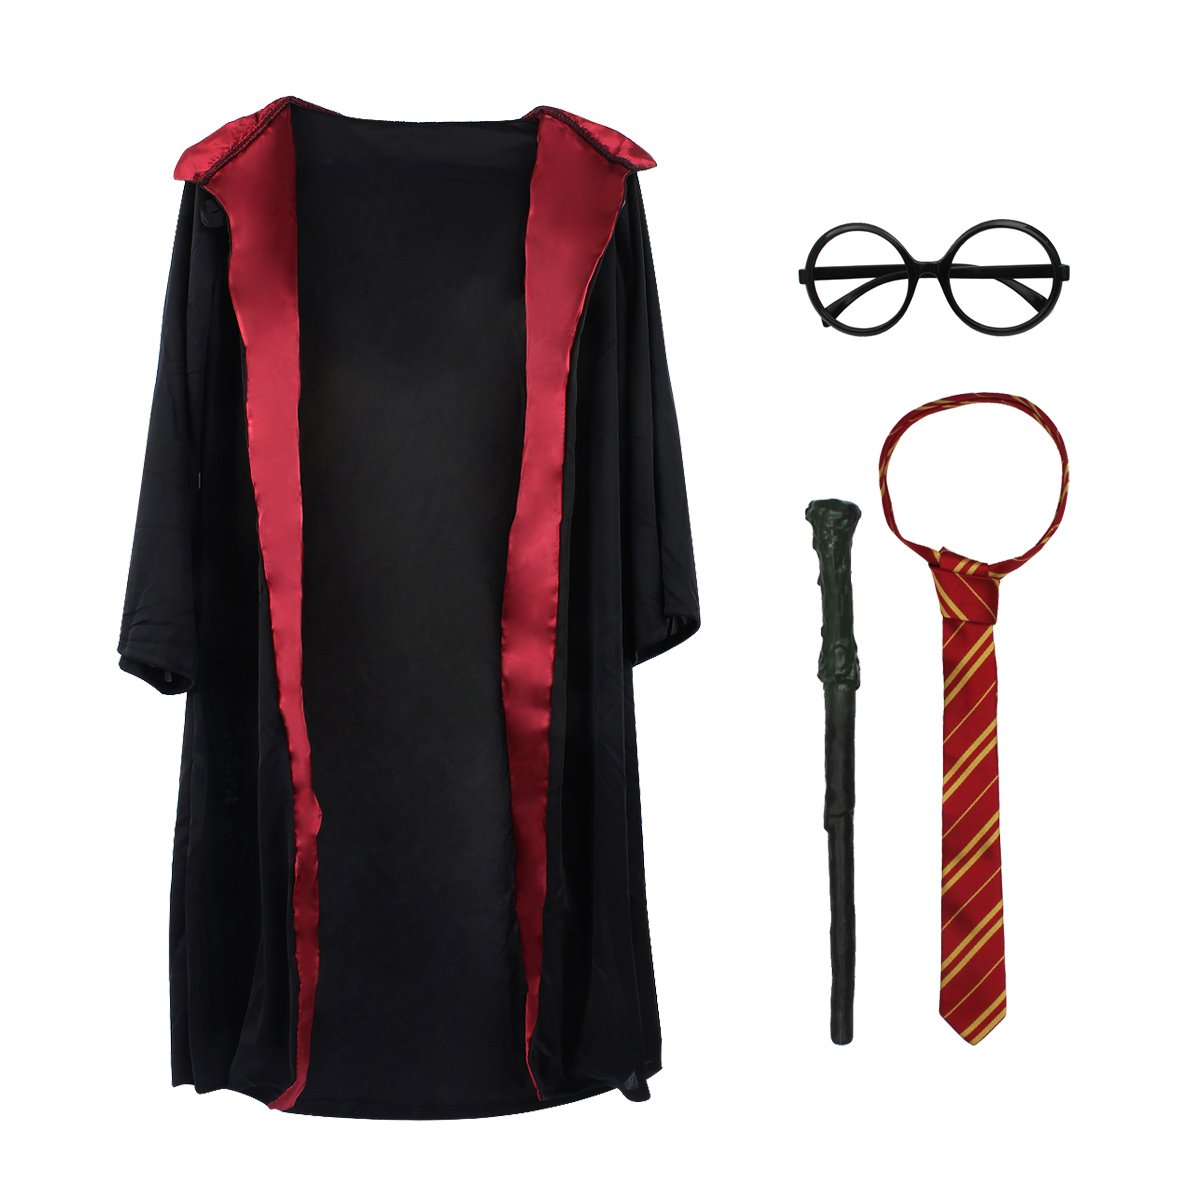 Toiijoy Kids 4Pcs Magical Wizard Costume Hooded Robe Role Play Dress up Set with Glasses, Tie and Wand for Children 3-8 yrs